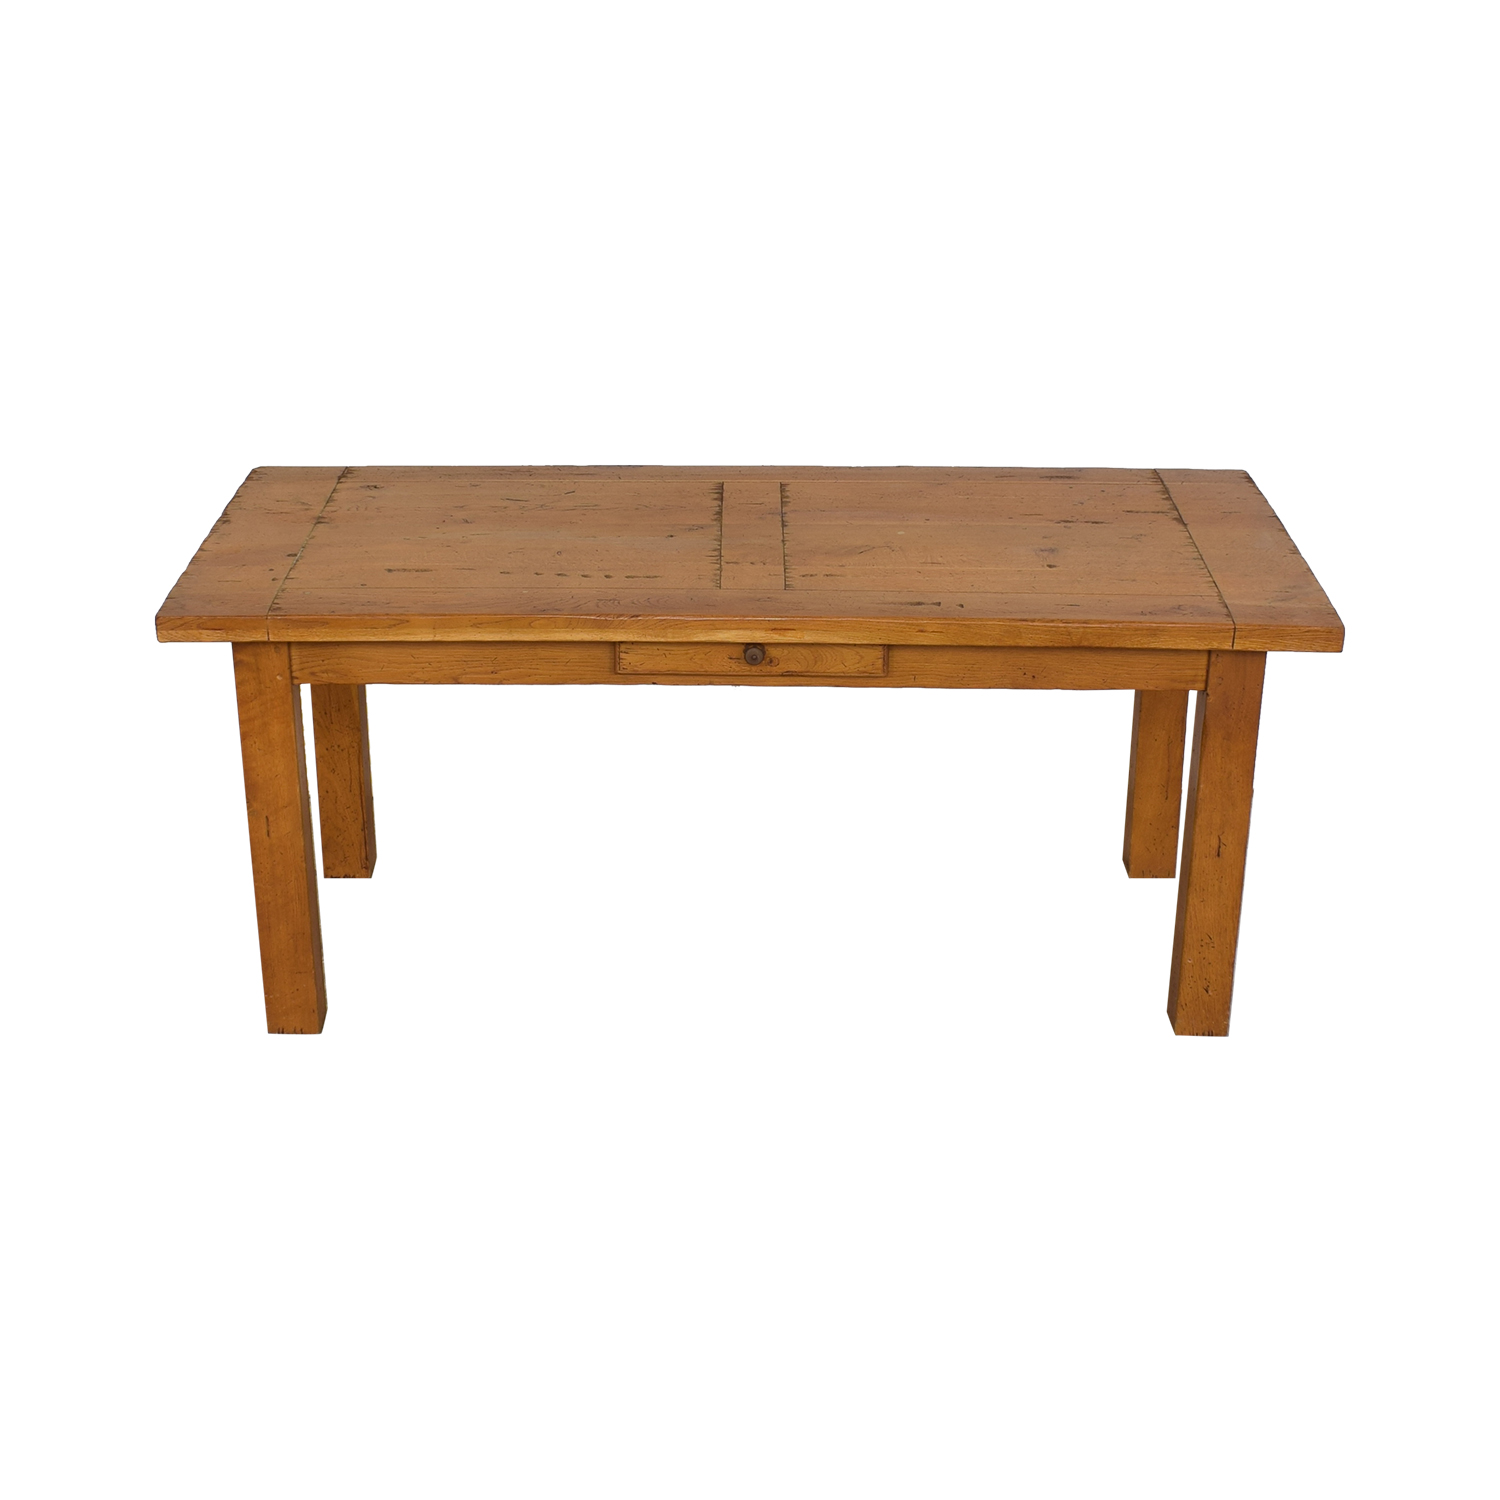 Crate & Barrel Crate & Barrel French Farm Dining Table brown